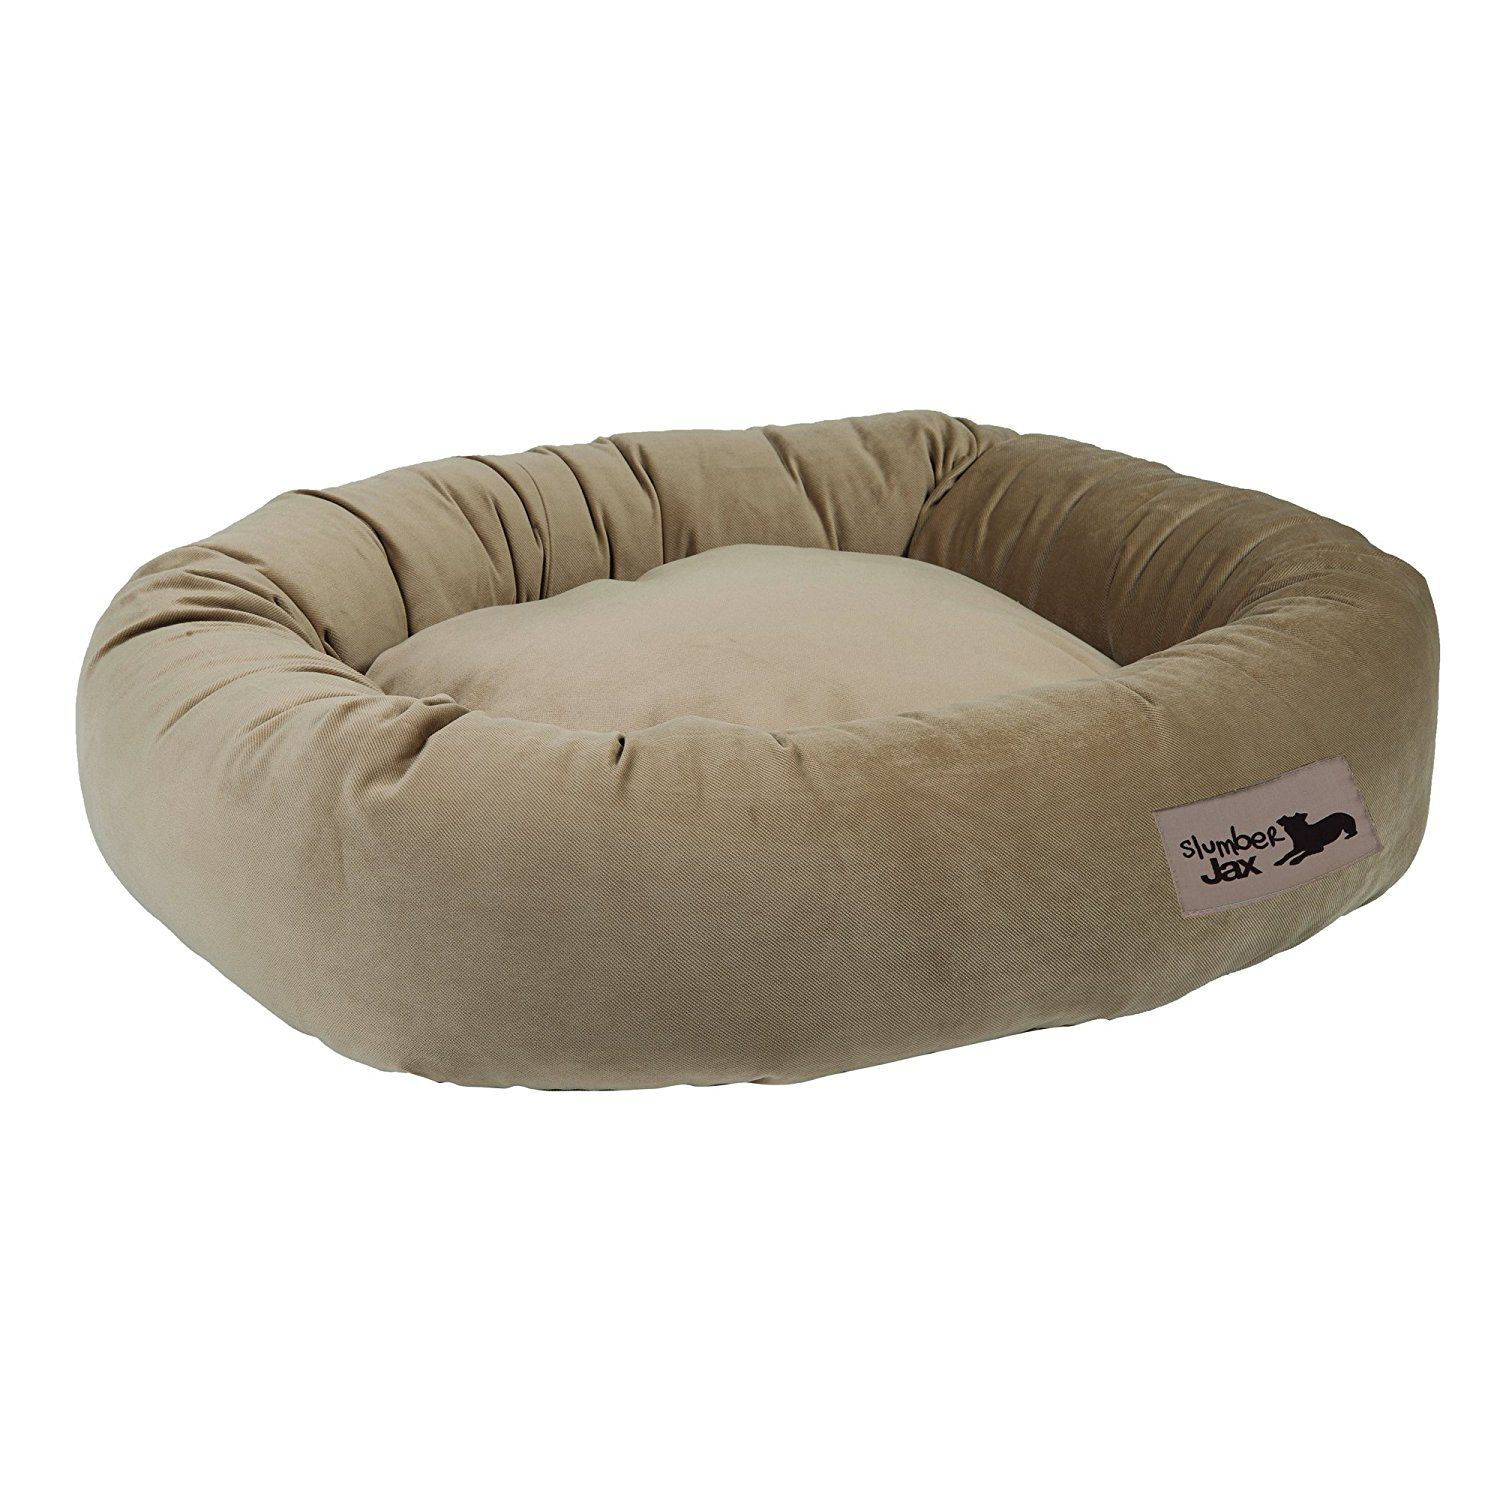 Slumberjax Luxury Donut Dog Bed Special Dog Product Just For You See It Now Dog Beds And Furniture Donut Dog Bed Dog Bed Cool Dog Beds